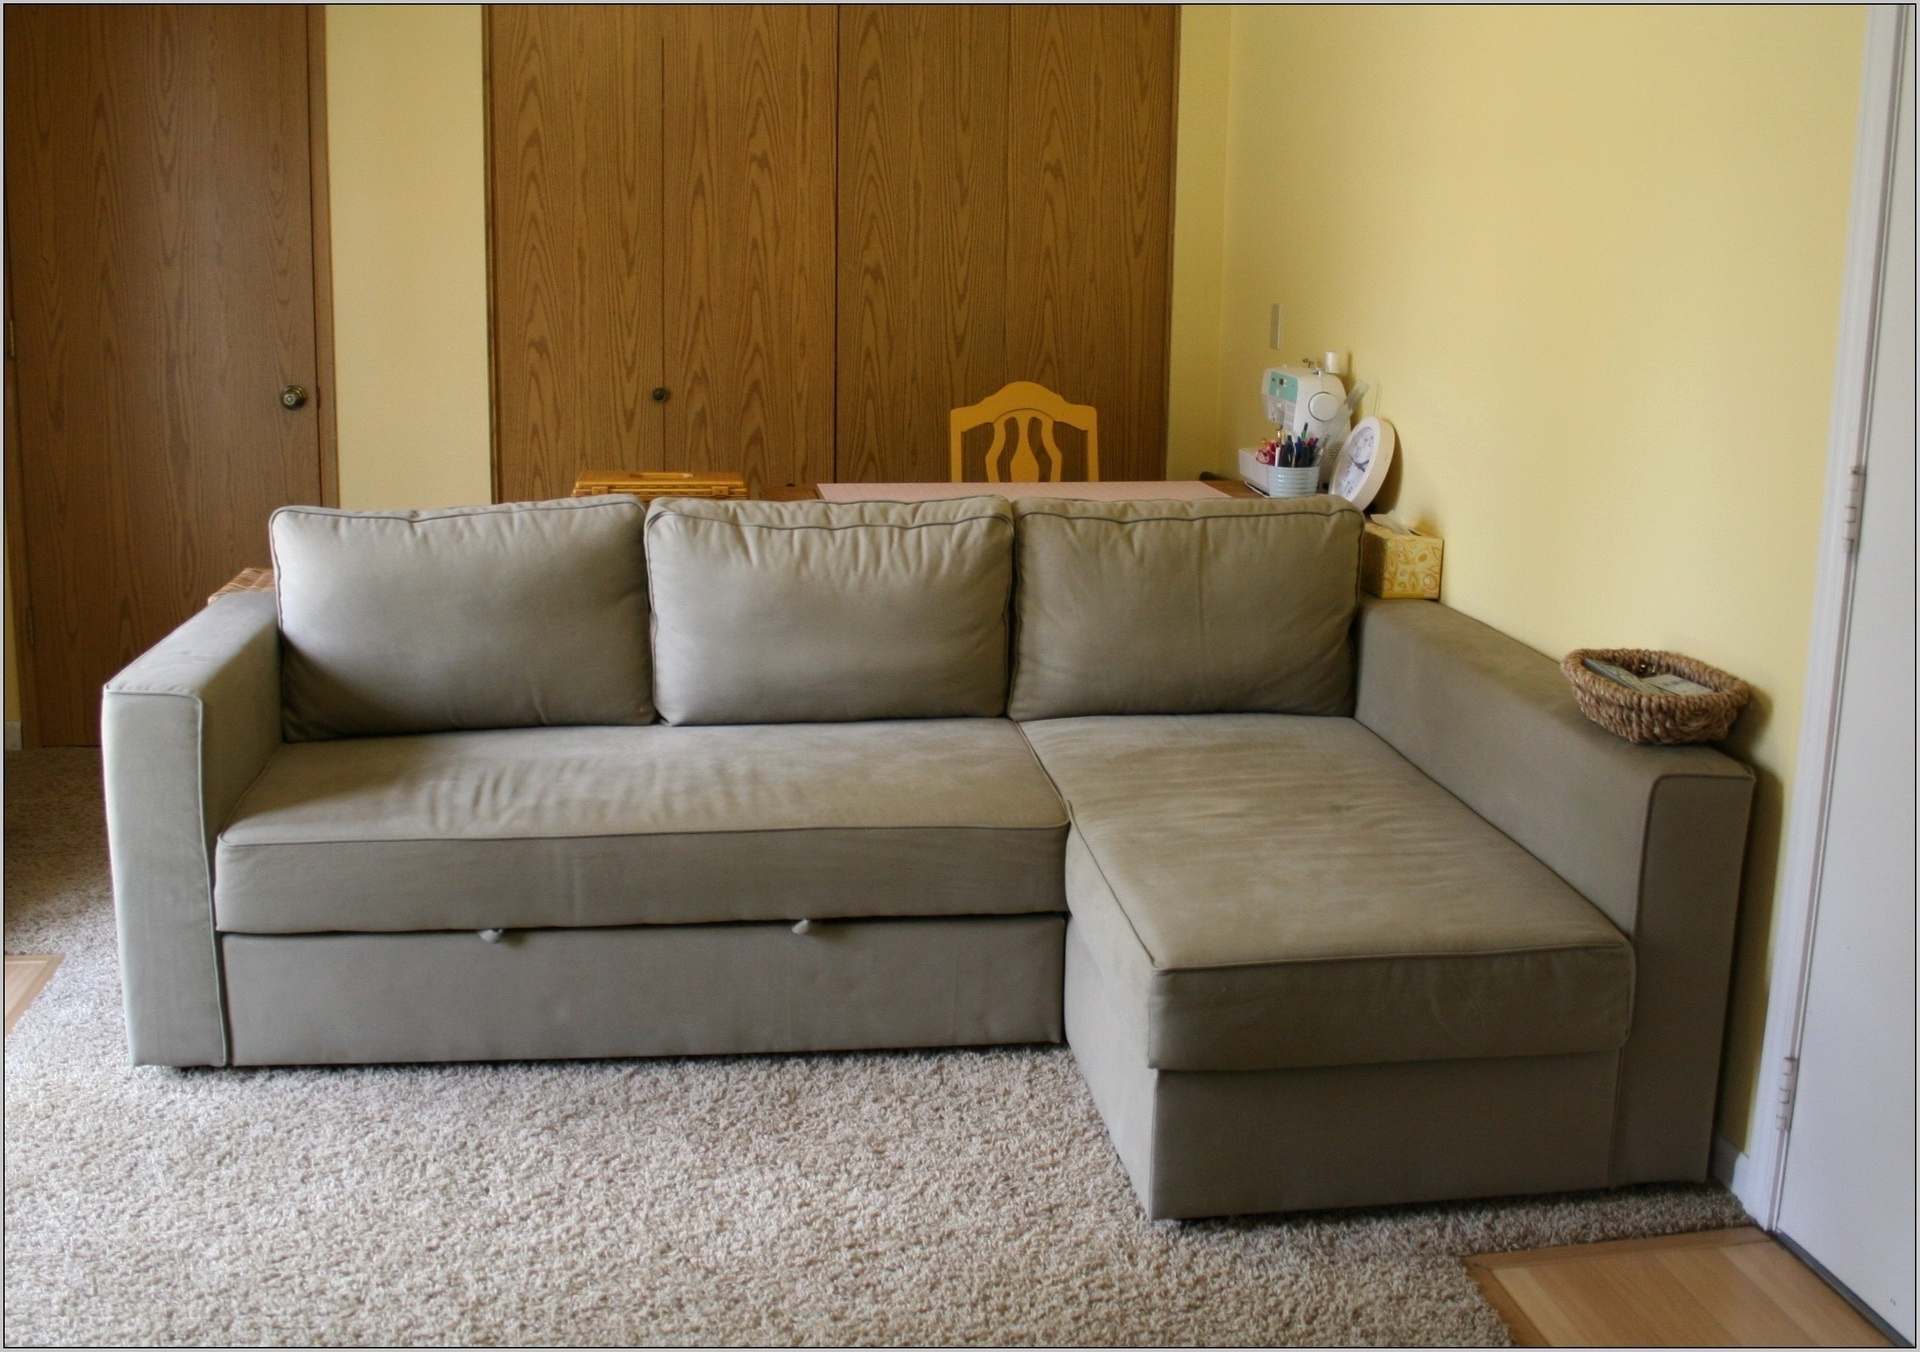 New Sofa Bed Ikea 2018 – Couches And Sofas Ideas Pertaining To Newest Ikea Sofa Beds With Chaise (View 14 of 15)